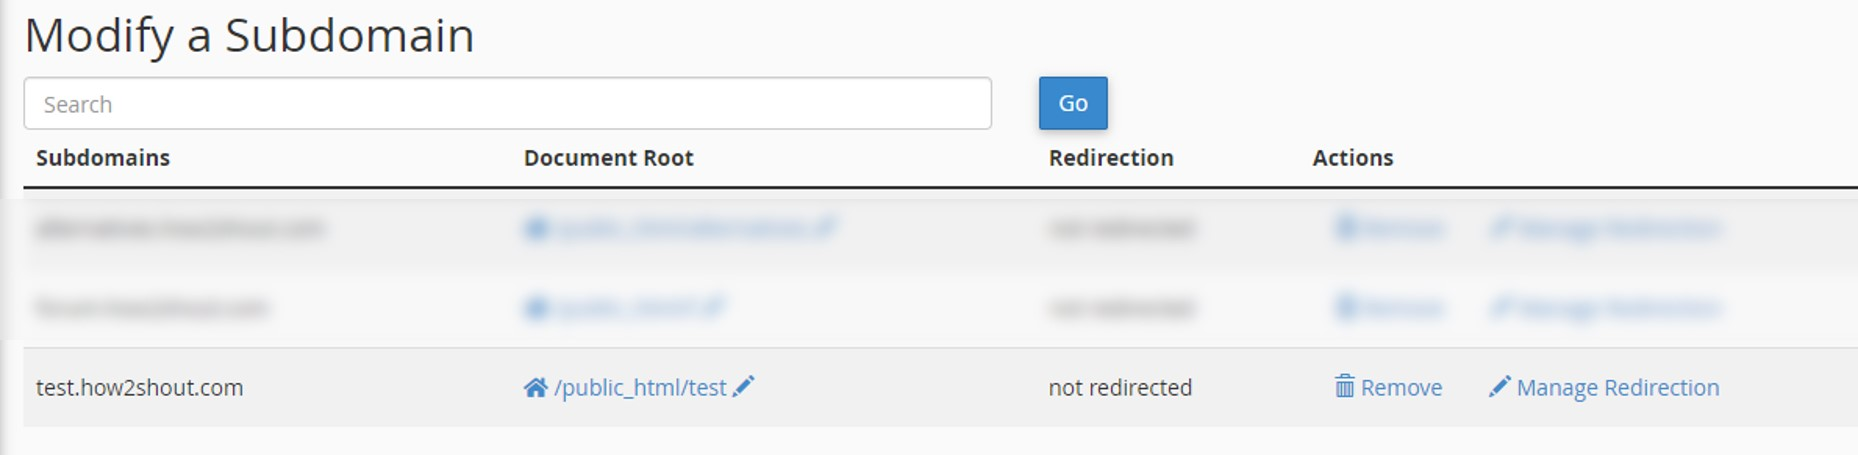 Subdomain redirection